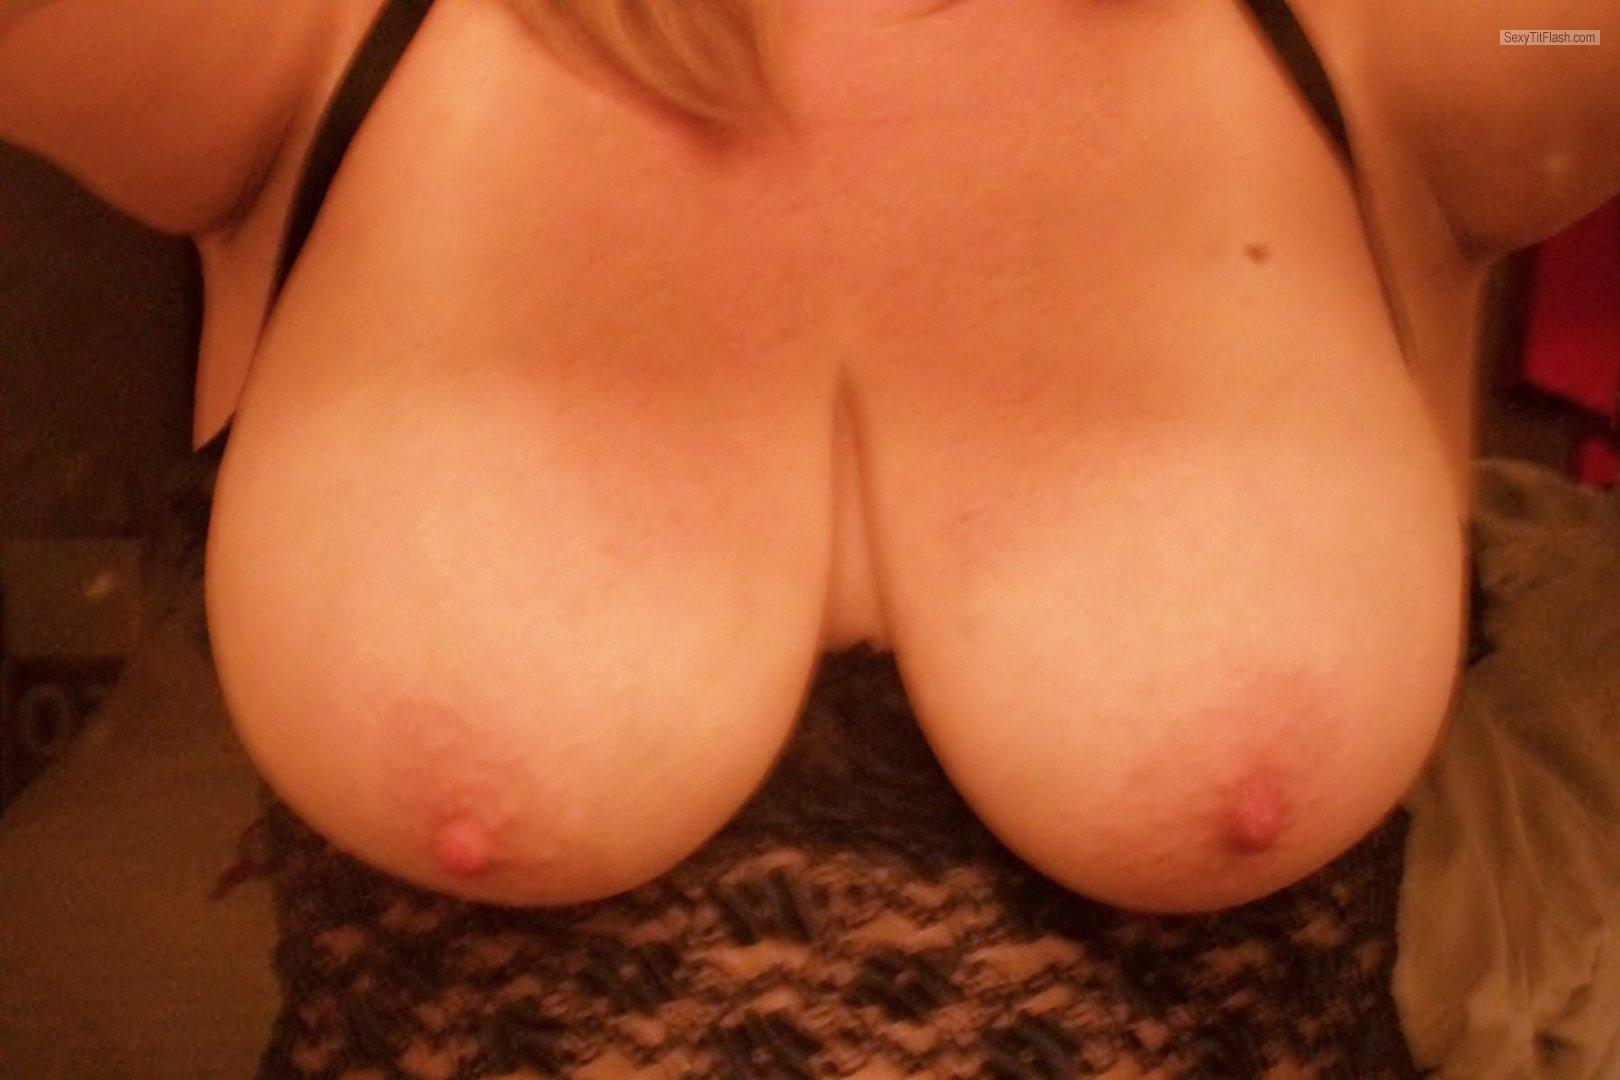 My Extremely big Tits Selfie by KTX